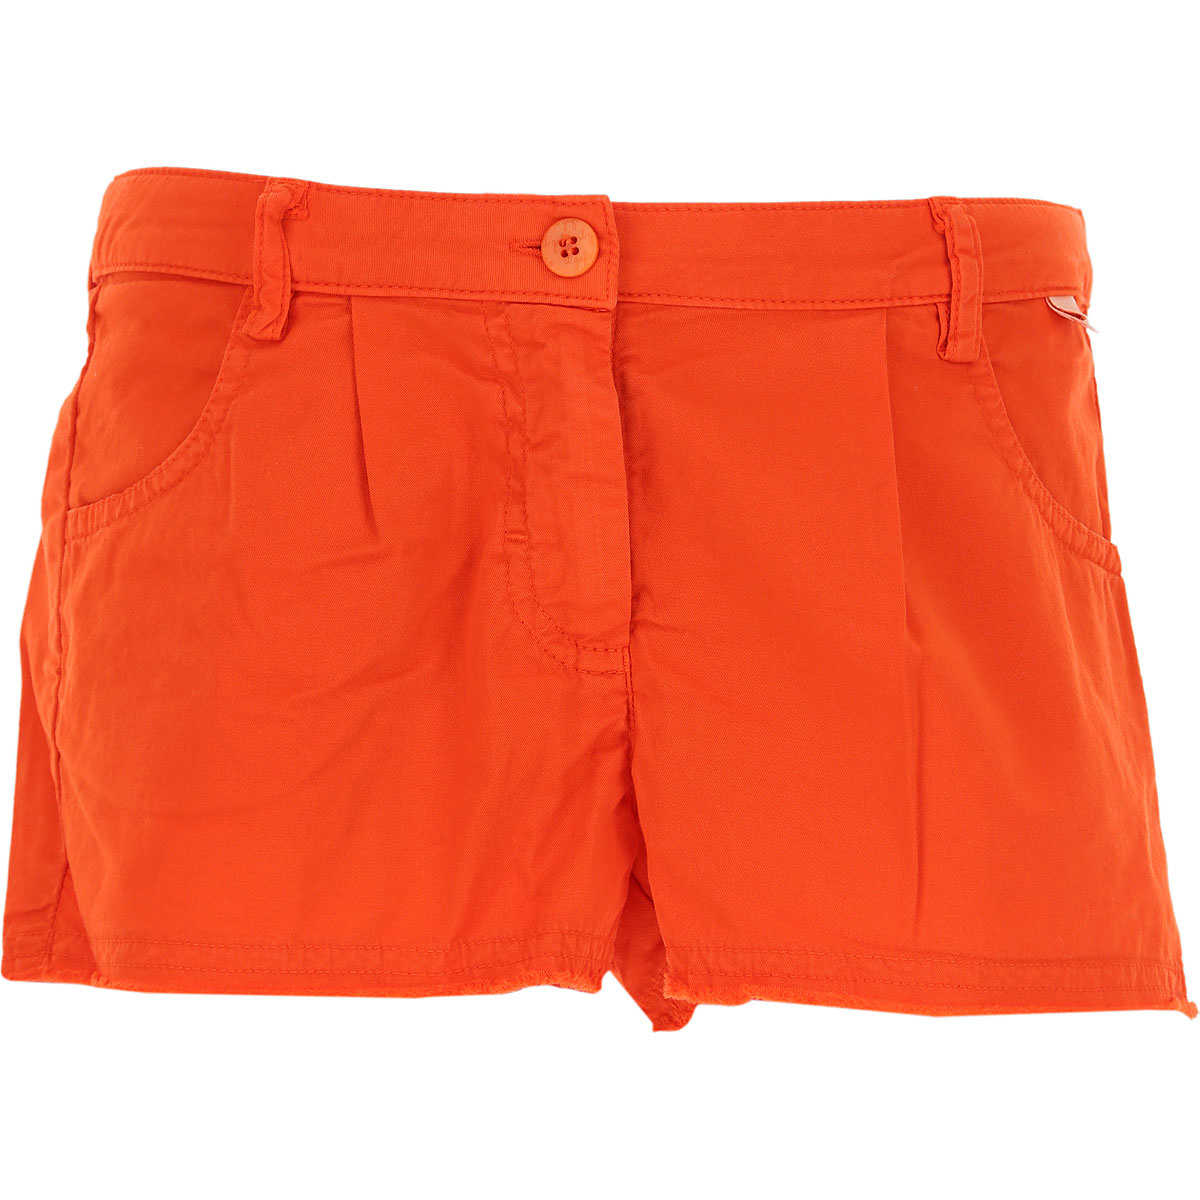 Il Gufo Kids Shorts for Girls On Sale in Outlet Orange - GOOFASH - Womens SHORTS